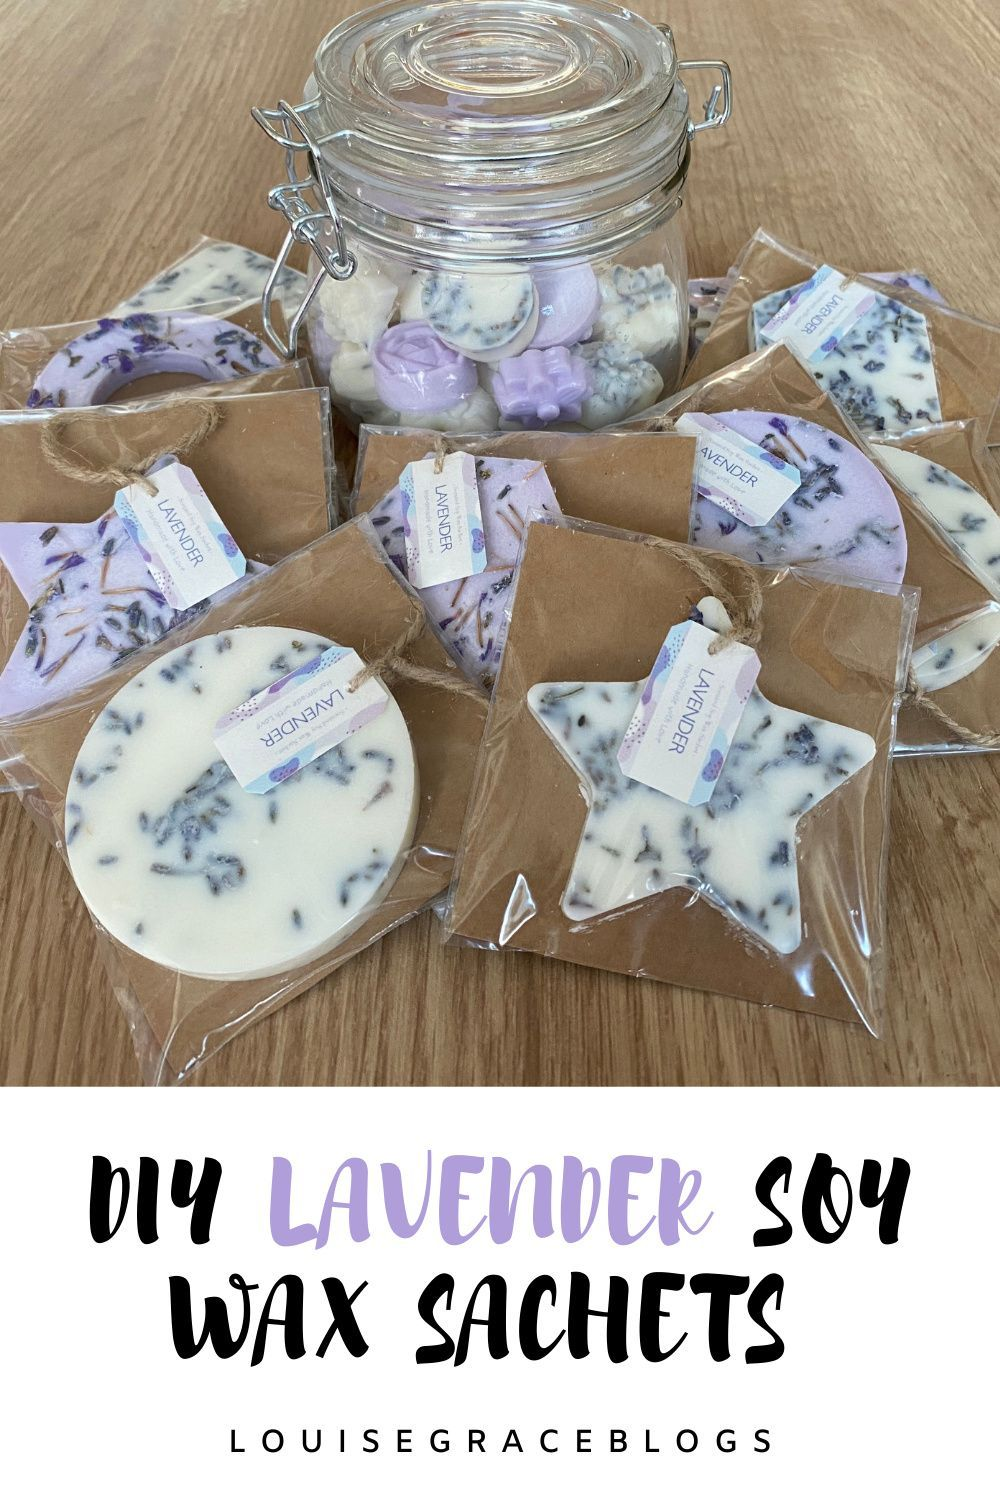 DIY Lavender soy wax sachets for the home and gift